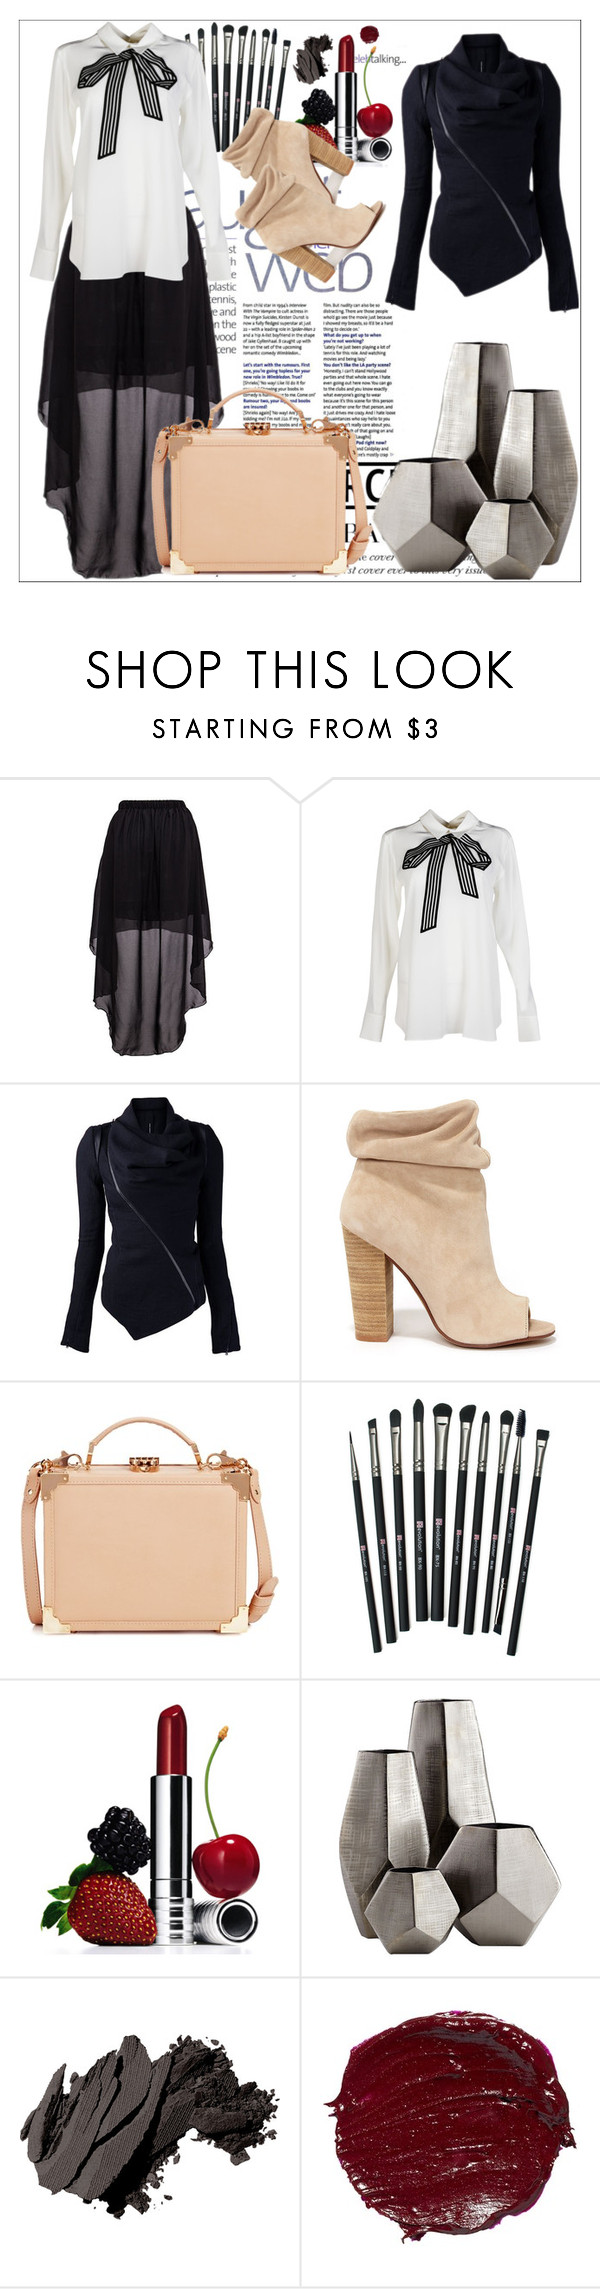 """Bez naslova #451"" by mirelacamdzic ❤ liked on Polyvore featuring STELLA McCARTNEY, Kristin Cavallari, Aspinal of London, Revolution, Clinique, Cyan Design and Bobbi Brown Cosmetics"